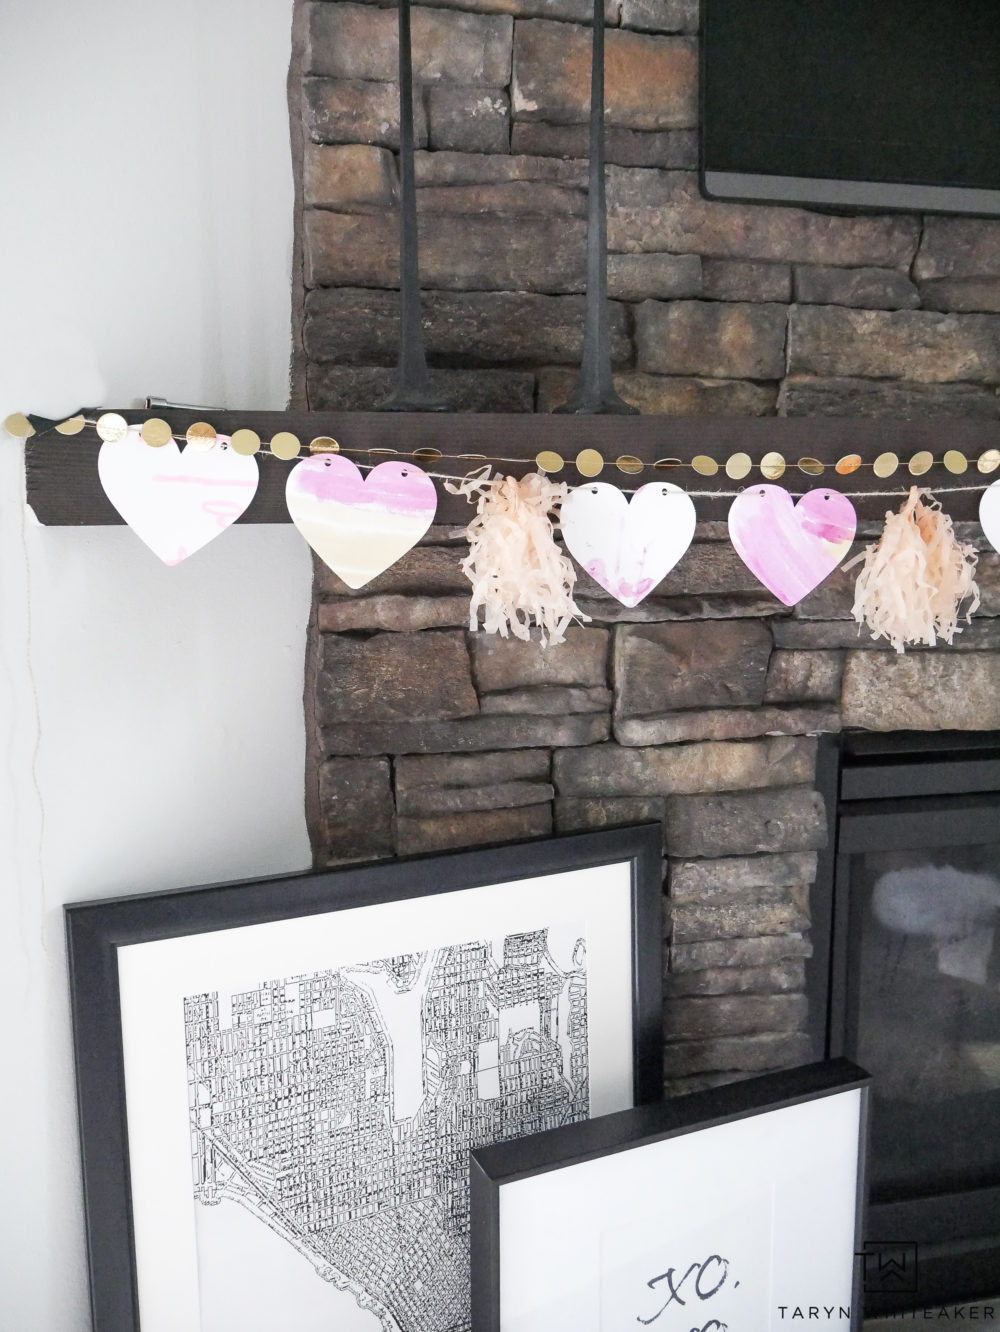 Learn how to create this Simple Valentine's DayMantel using your kids' artwork! It's always fun to add a little festive cheer to your home especially with handmade art!